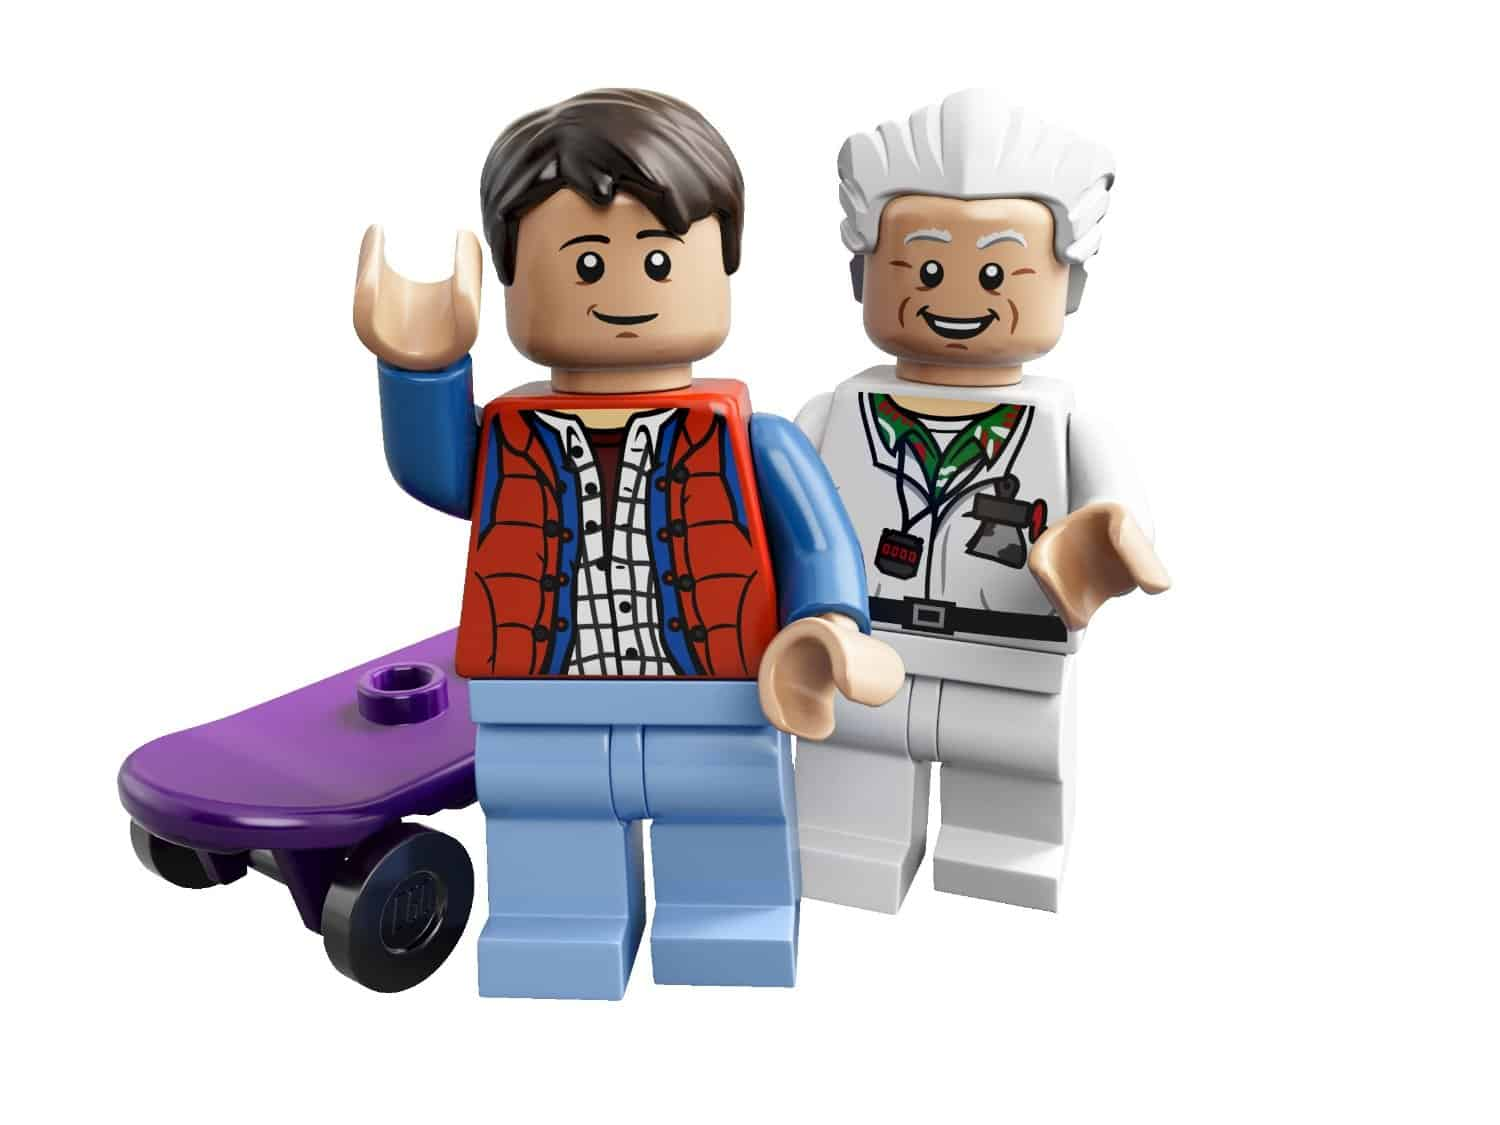 Lego The DeLorean Time Machine Set Doc and Marty with Hover Board Figures